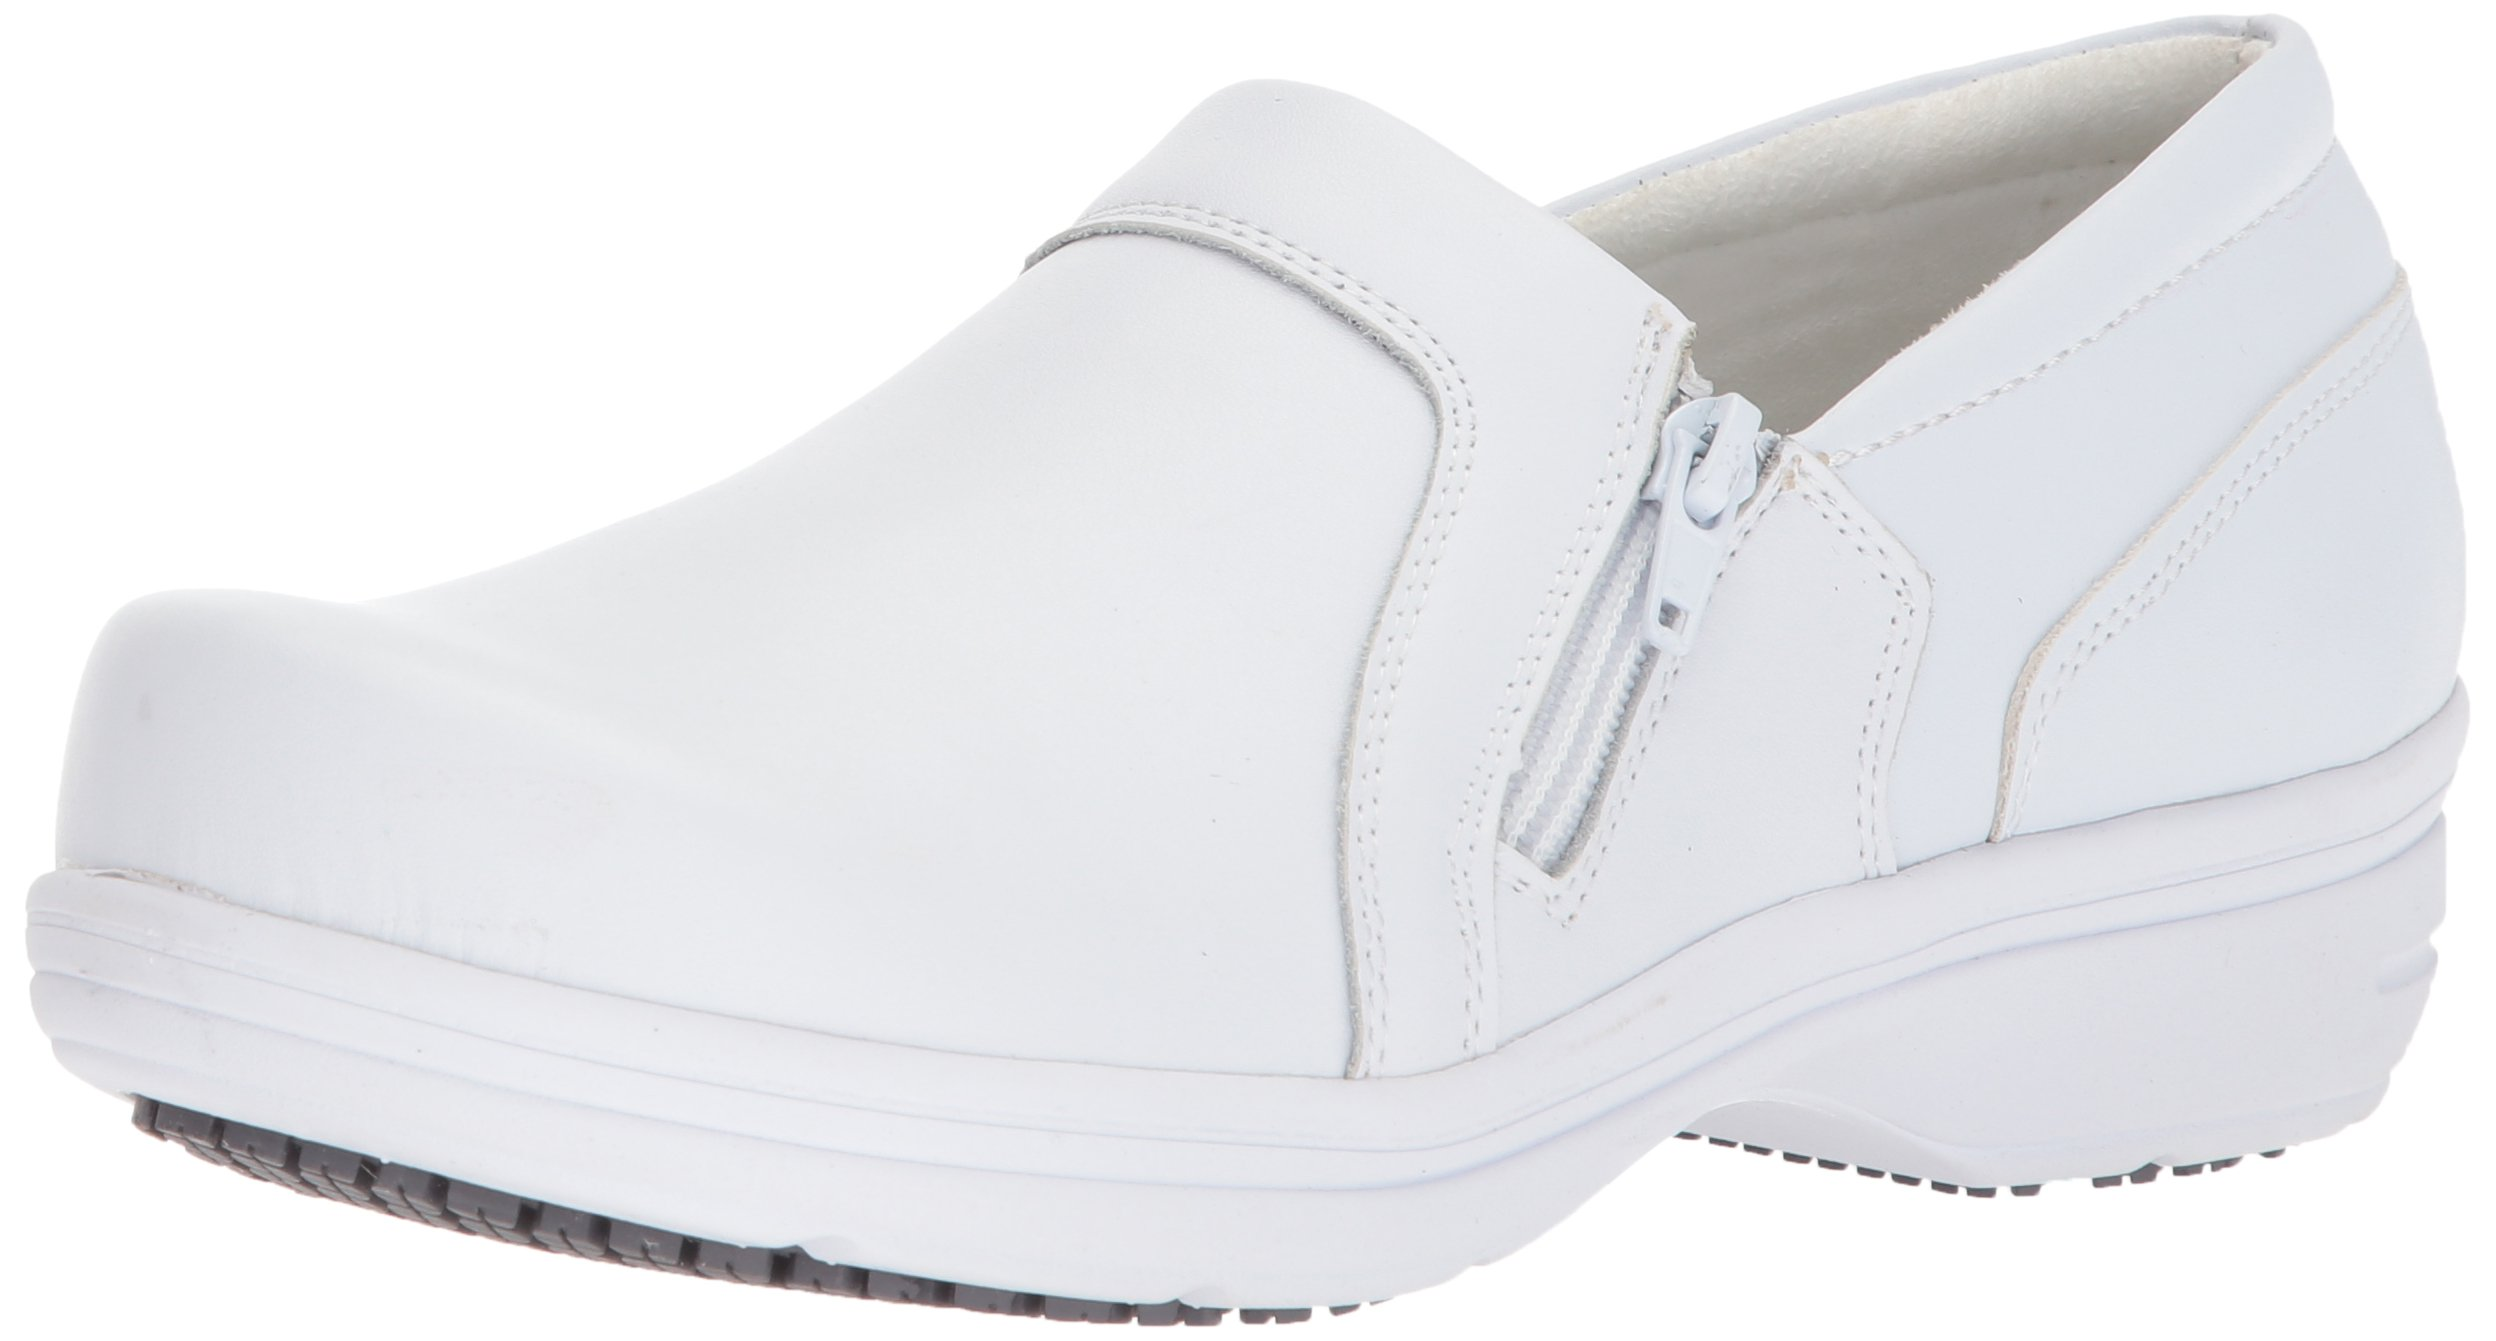 Easy Works Women's Bentley Health Care Professional Shoe, White, 8.5 M US